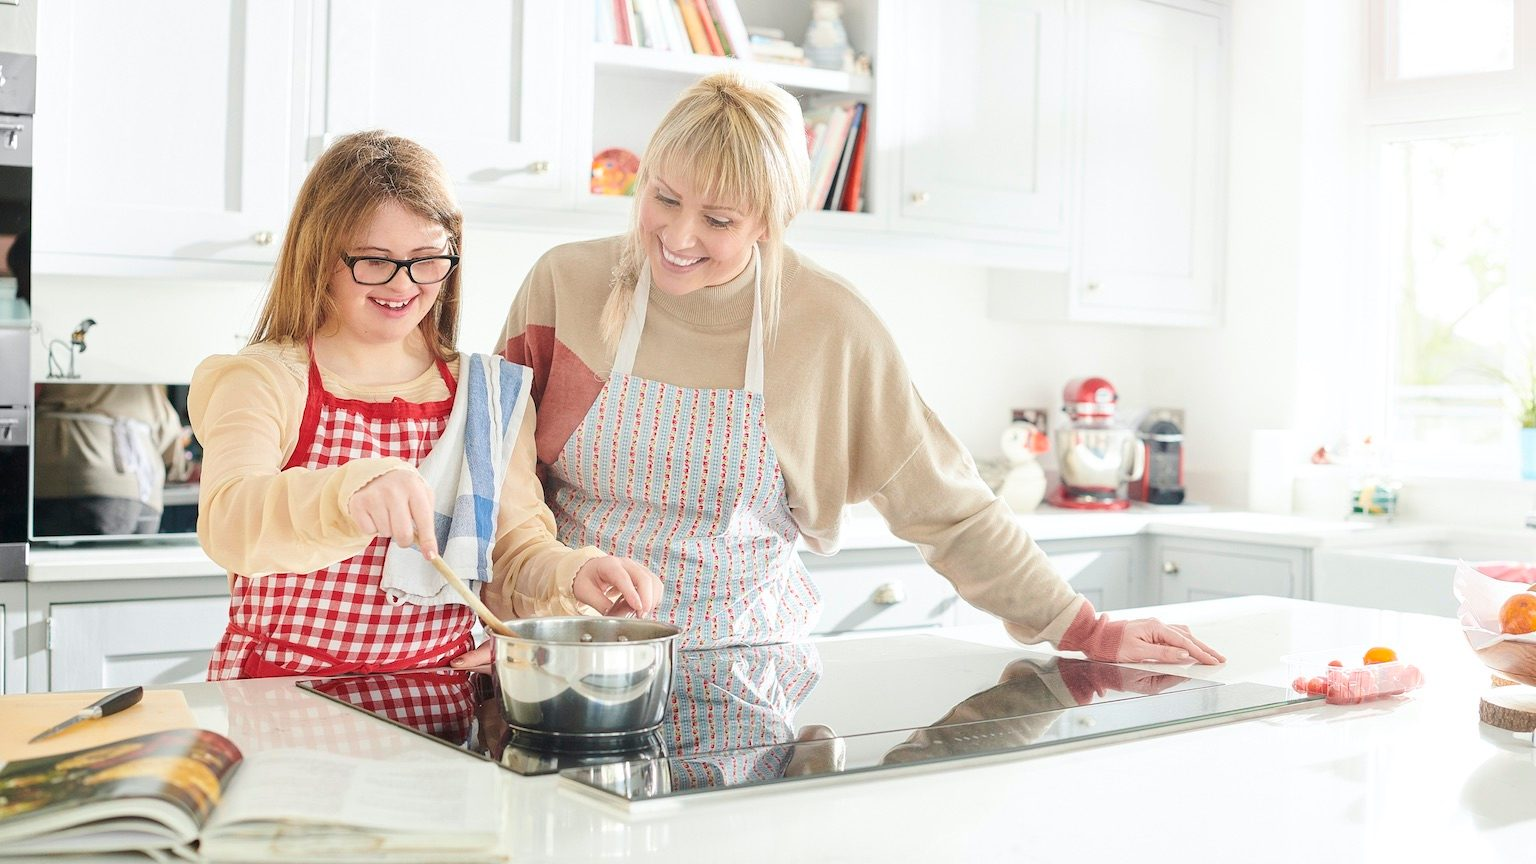 mother and daughter cooking fun